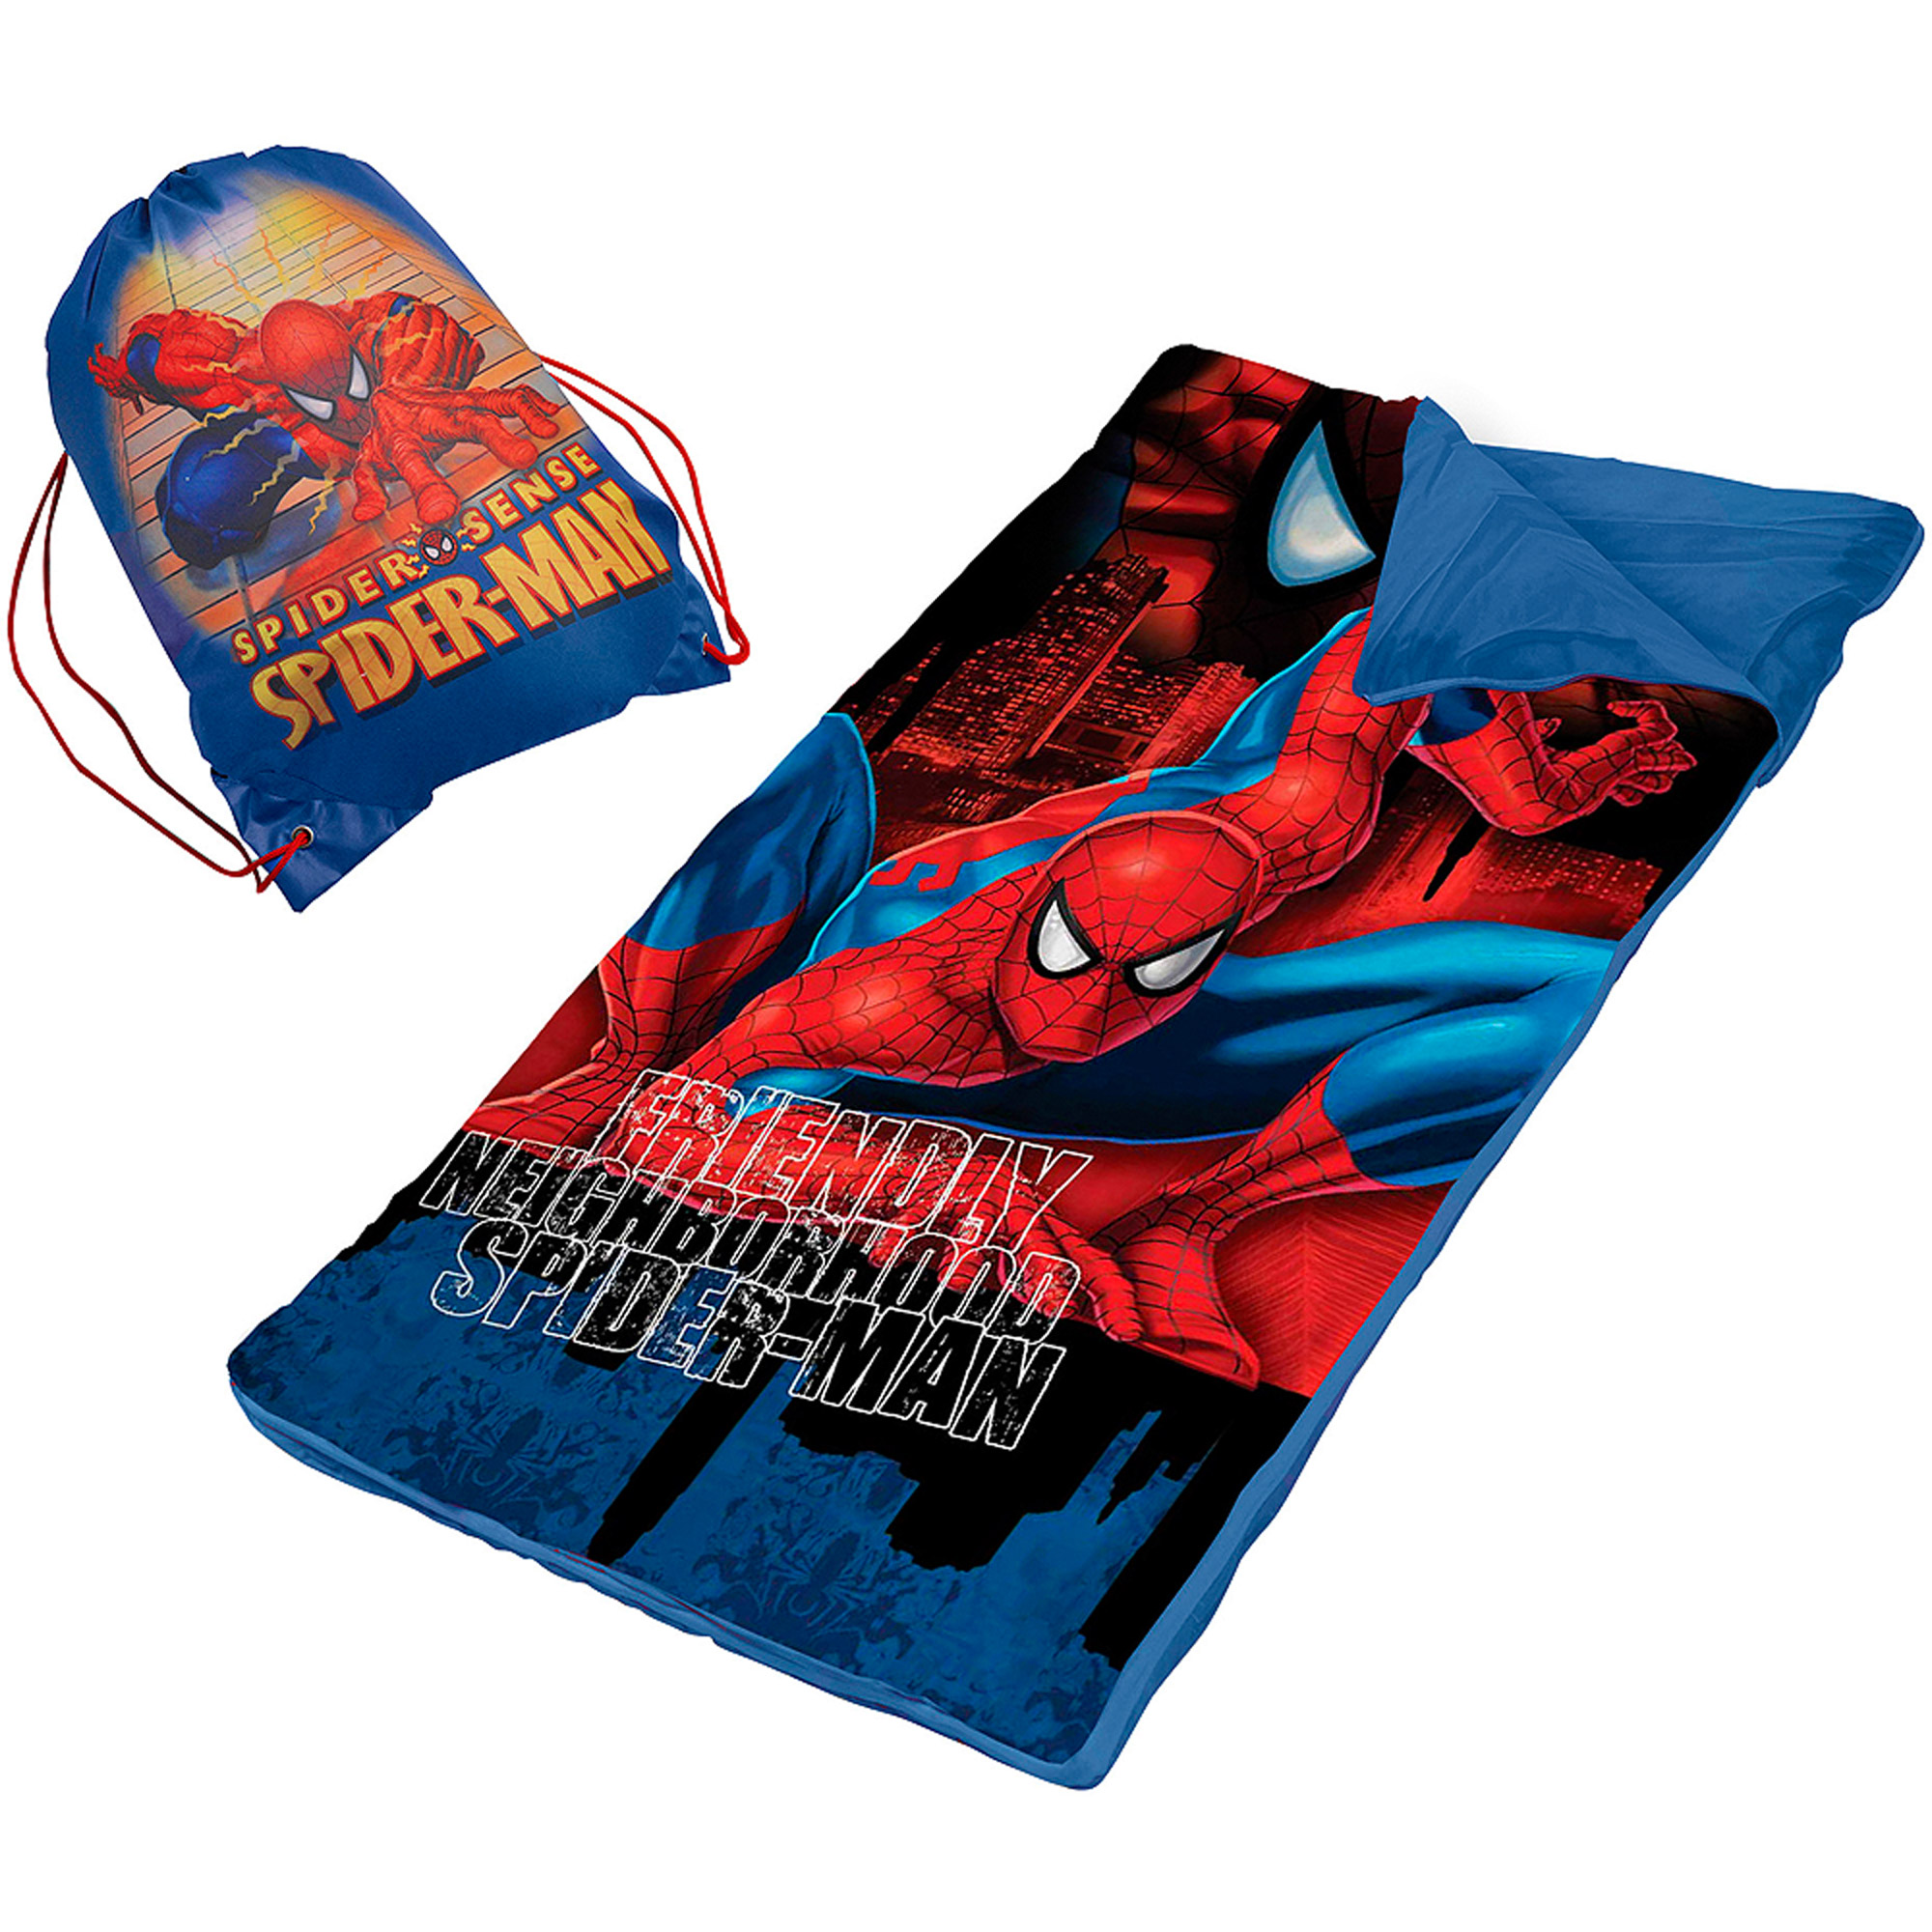 Spider-Man Slumber Nap Mat with Bonus Sling Bag - Walmart.com